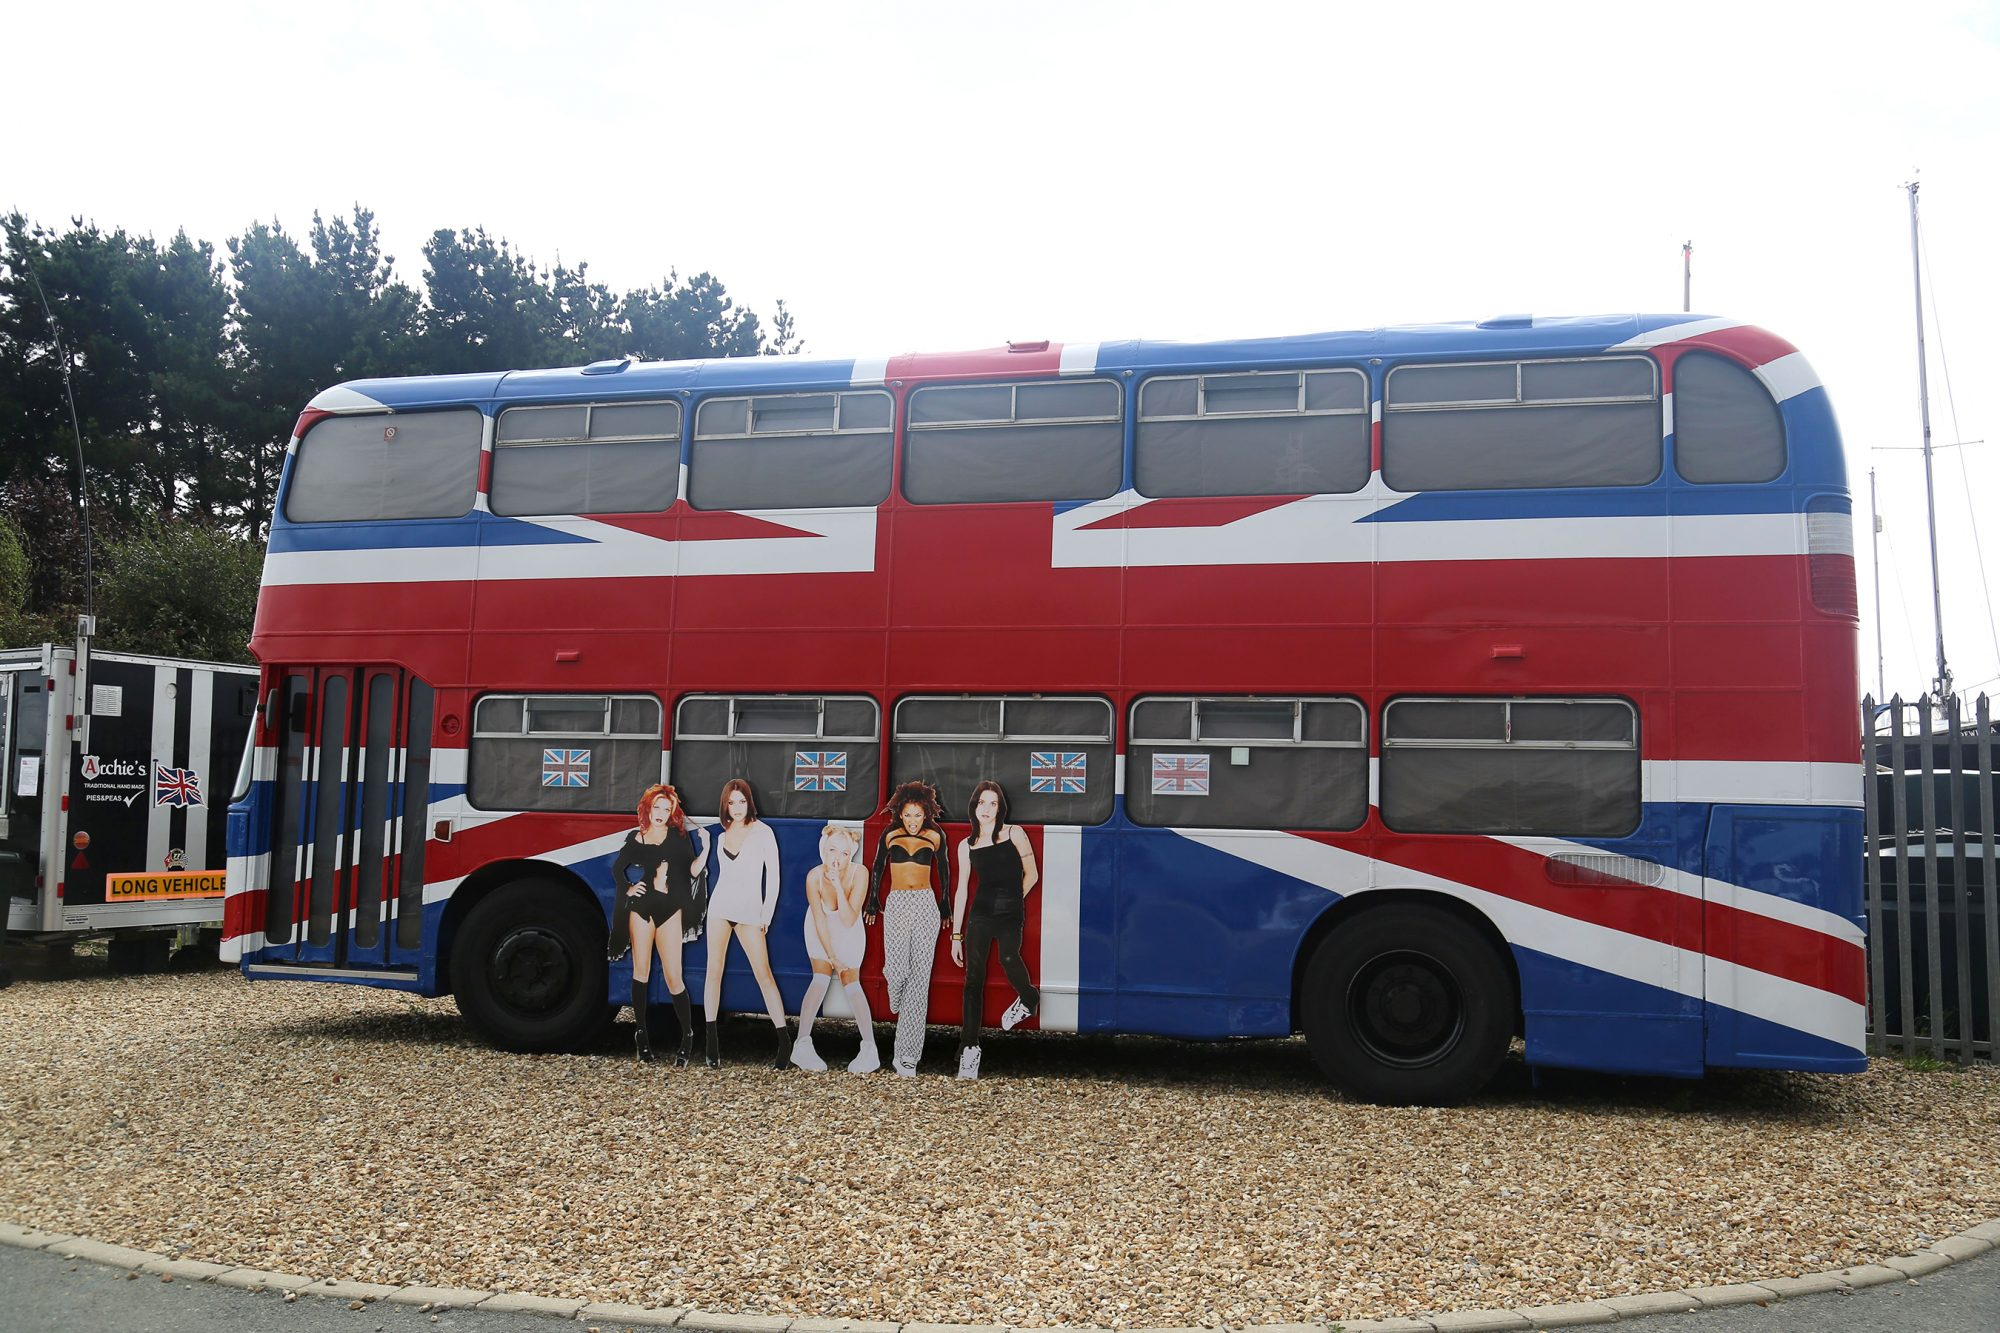 Bus used in Spice Girls movie on display at the Island Harbour Marina, Isle of Wight - 17 Aug 2014